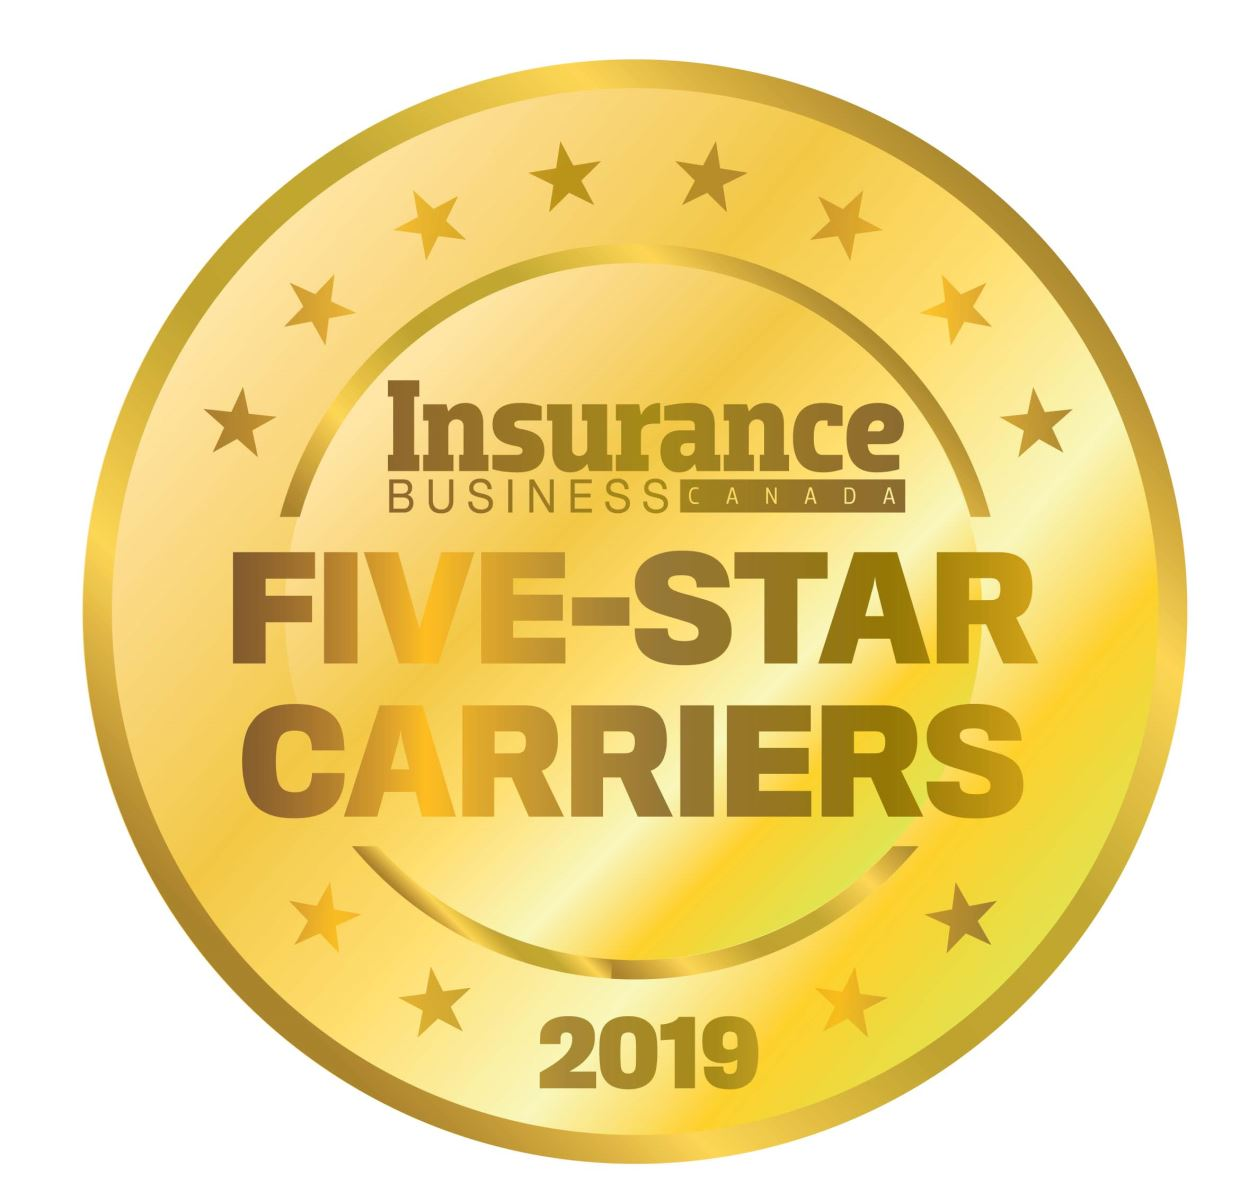 Five-Star Carriers 2019